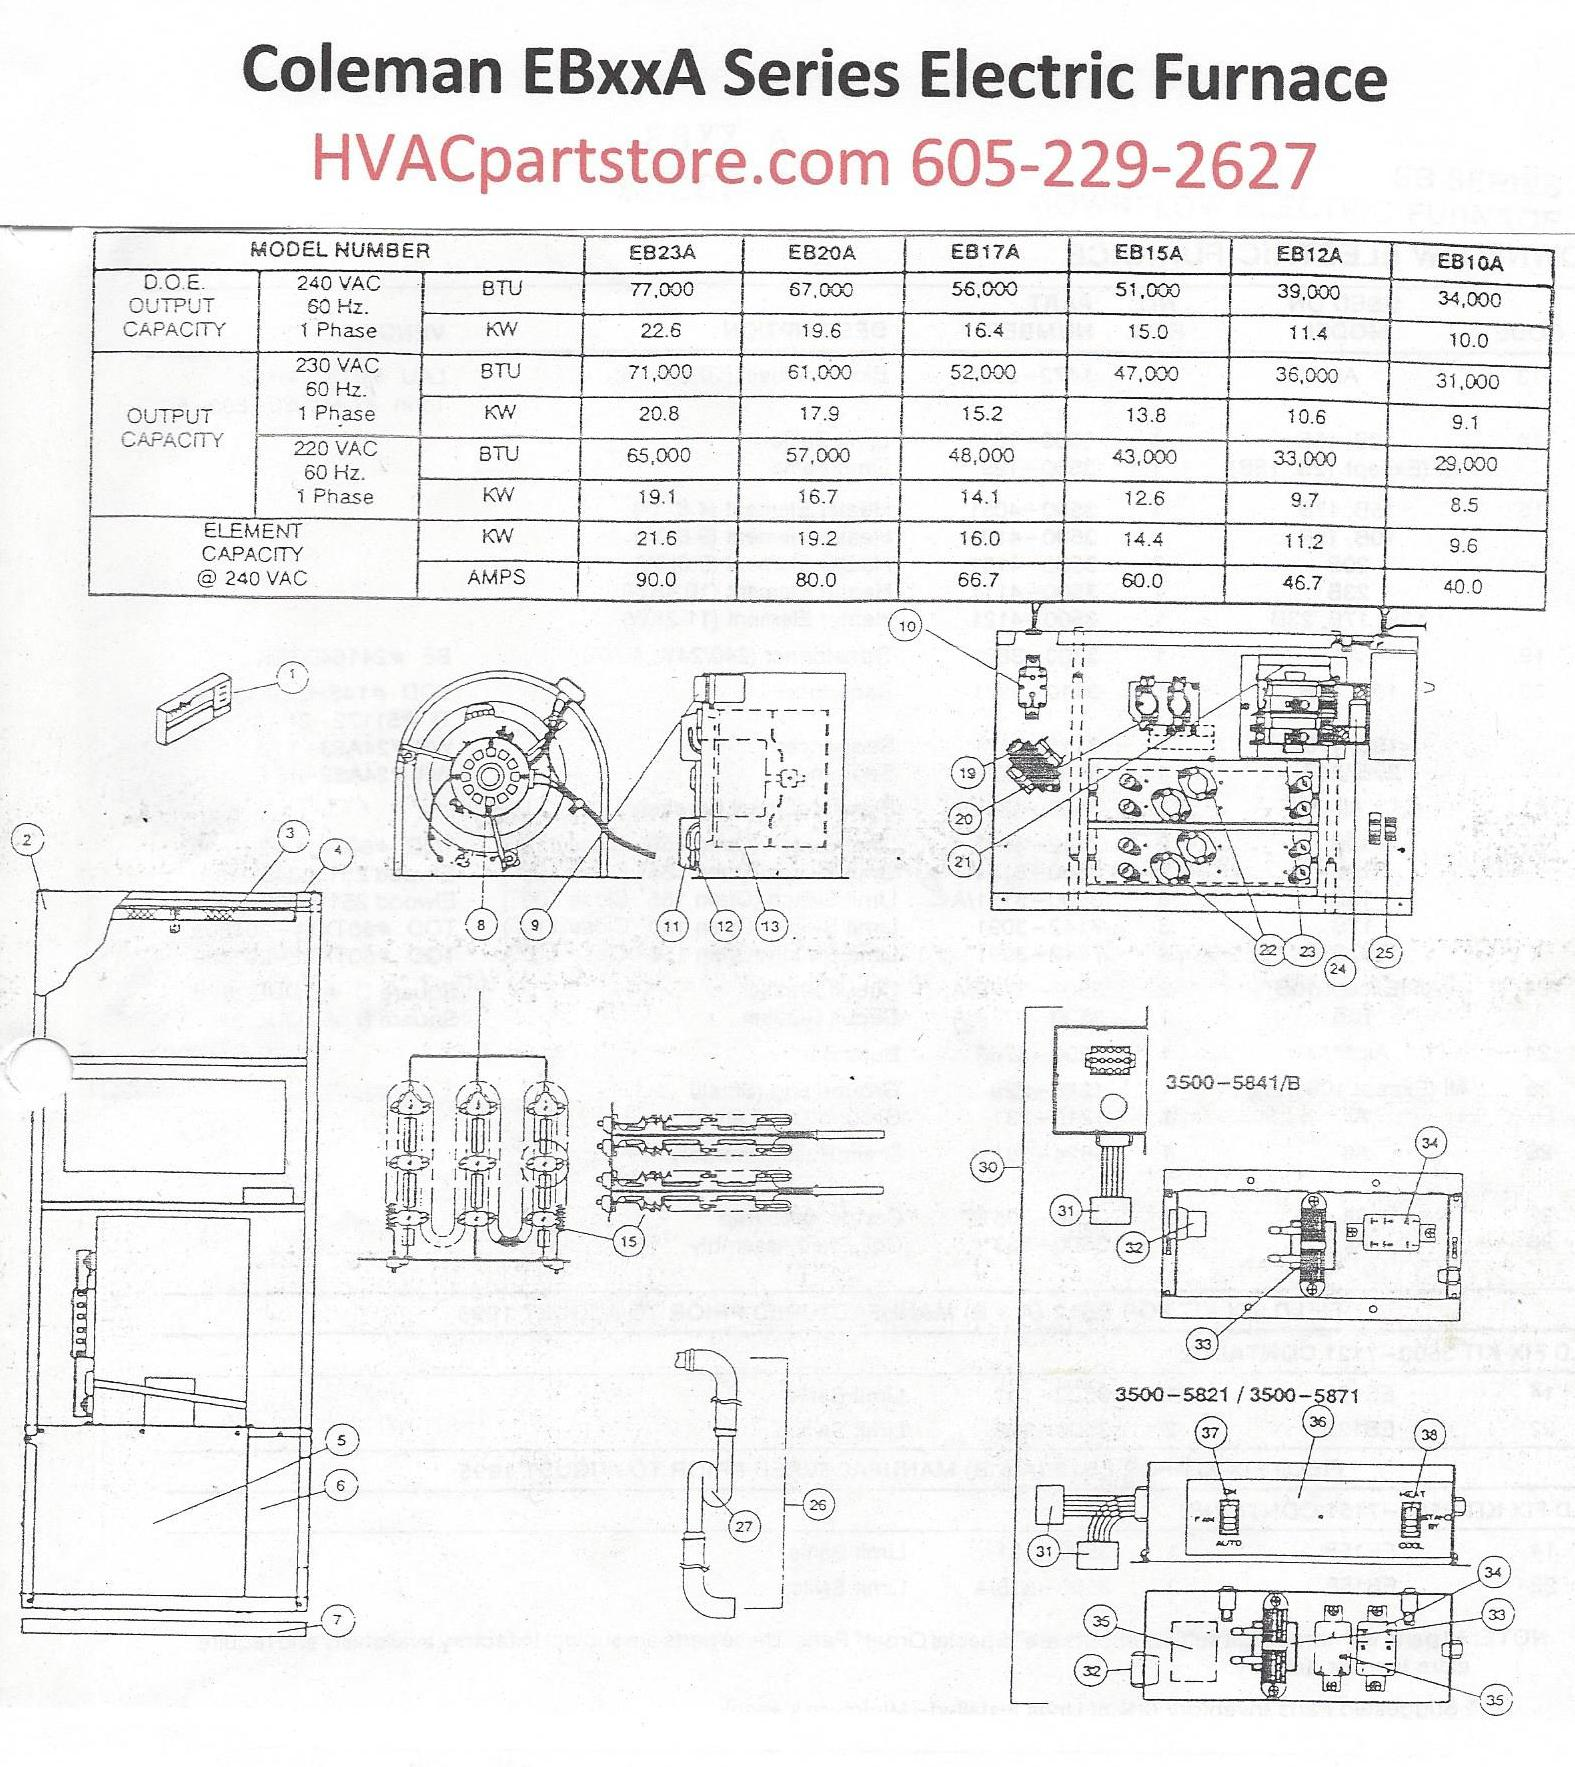 central air wiring diagram central image wiring wiring diagram for central air sys the wiring diagram on central air wiring diagram